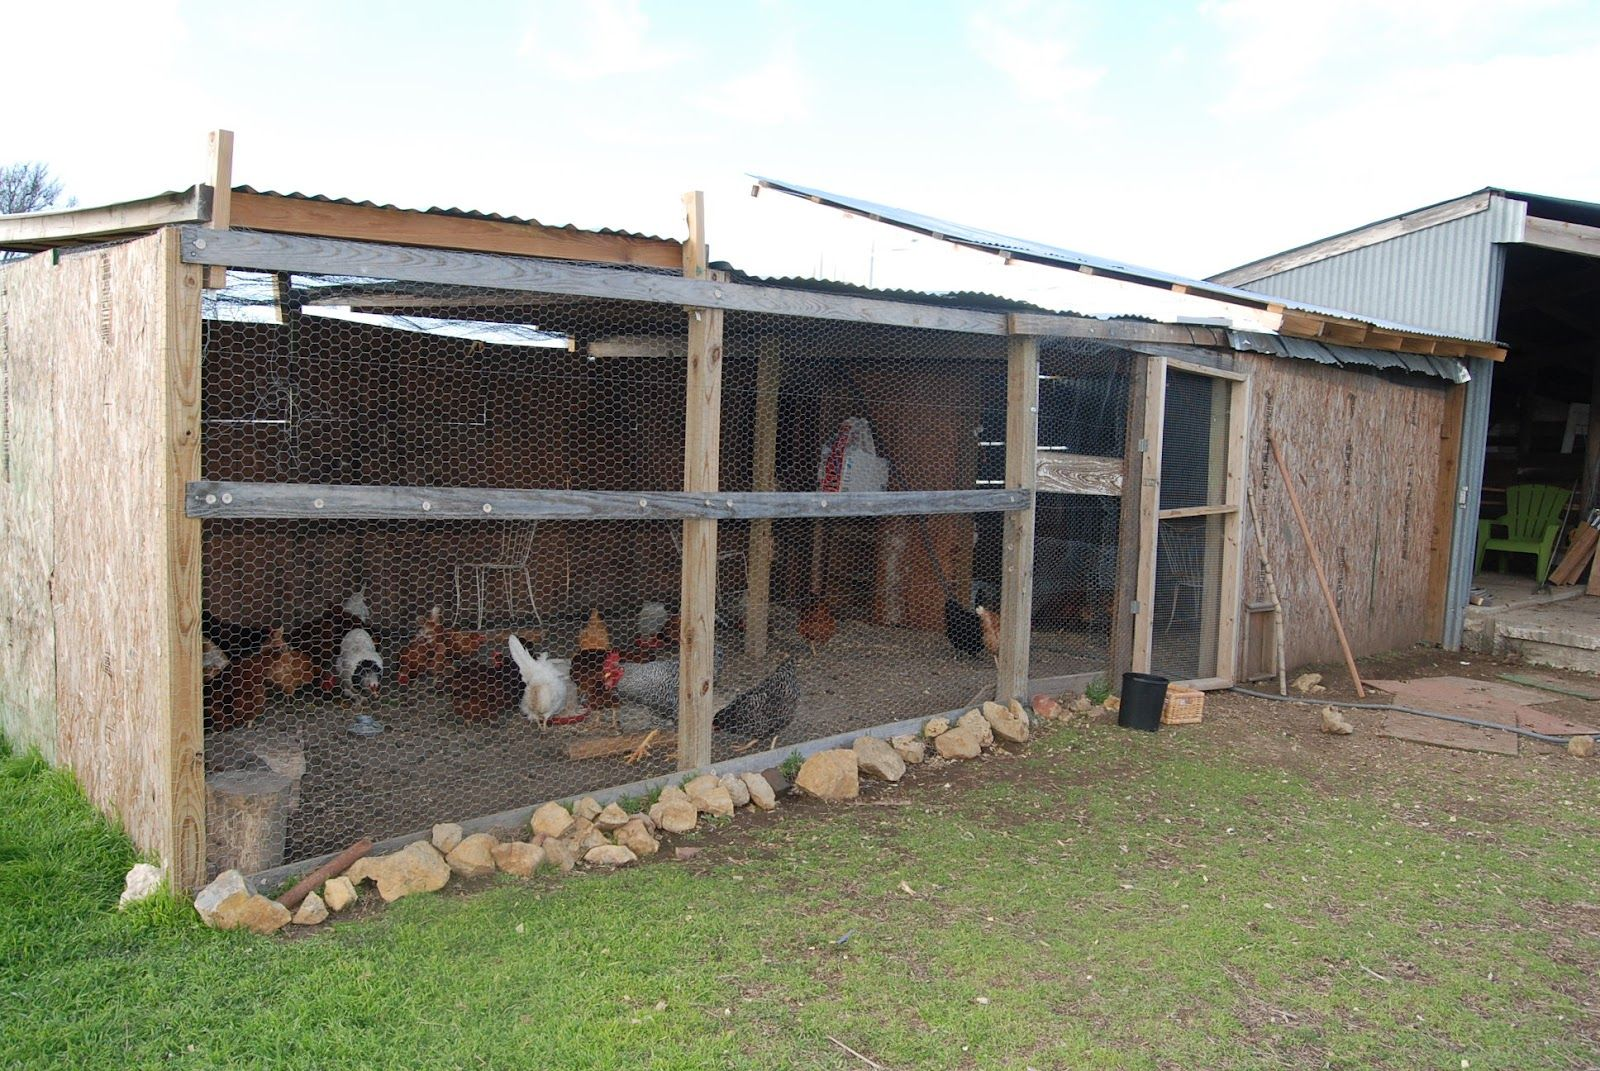 We Have A Nice Chicken Coop For Our Chickens About 300 Square Feet Chicken Coop Coops Farm Restaurant